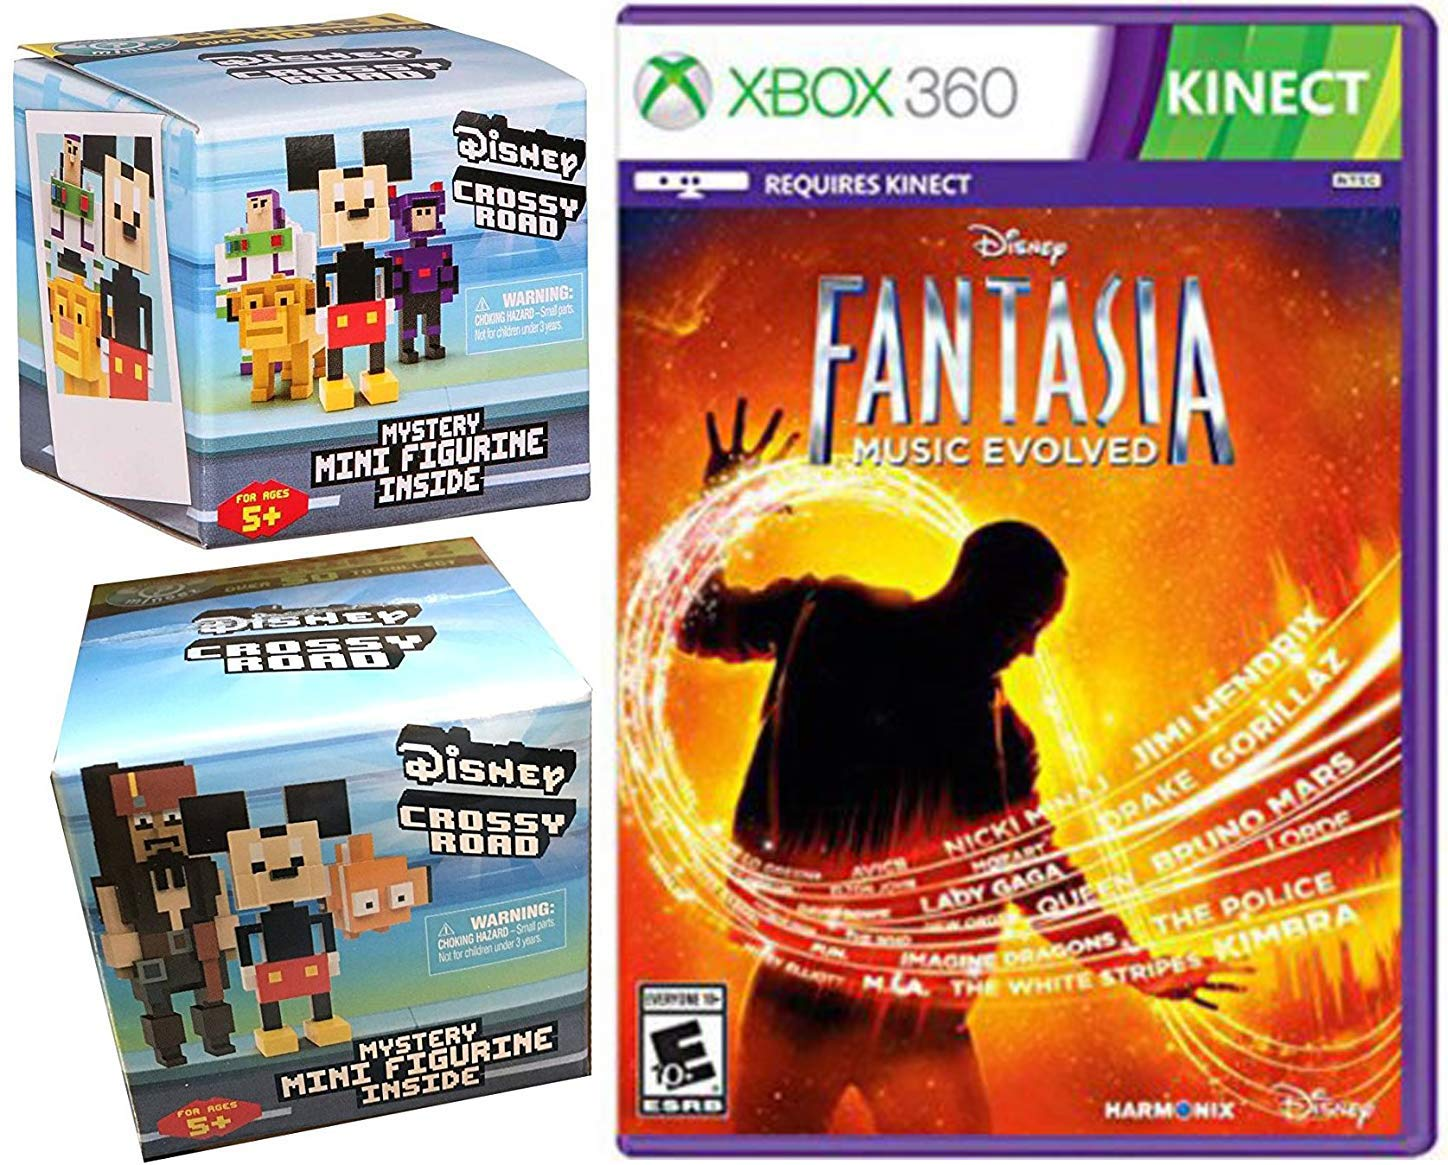 AYB Products Music Crossy Road Disney Pixelated Figure Pack Series 1 Blind Box Series 2 8-Bit Figure /& Fantasia Evolved Xbox 360 Kinnect Video Game Character Bundle